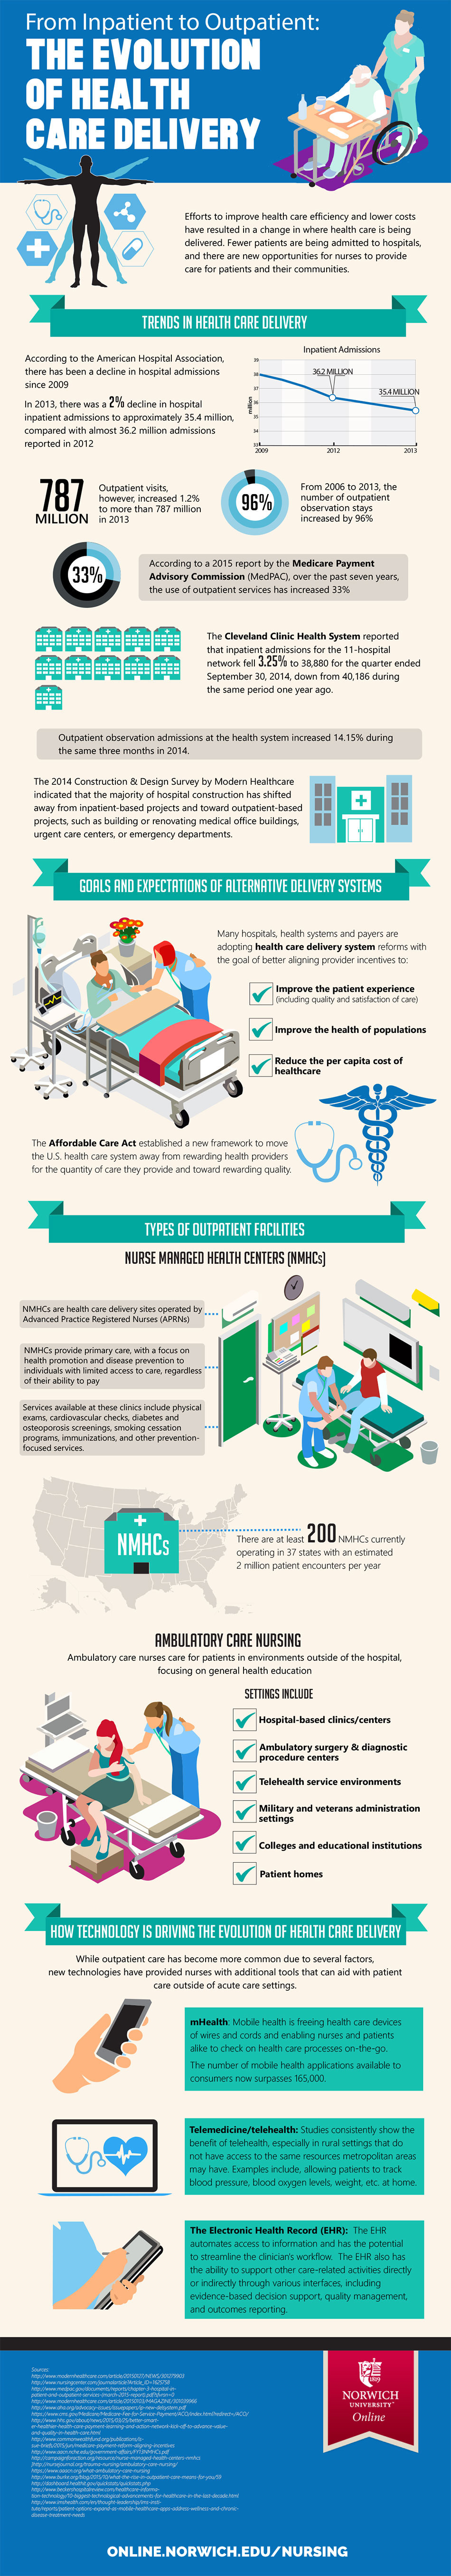 infographic on the evolution of healt care delivery